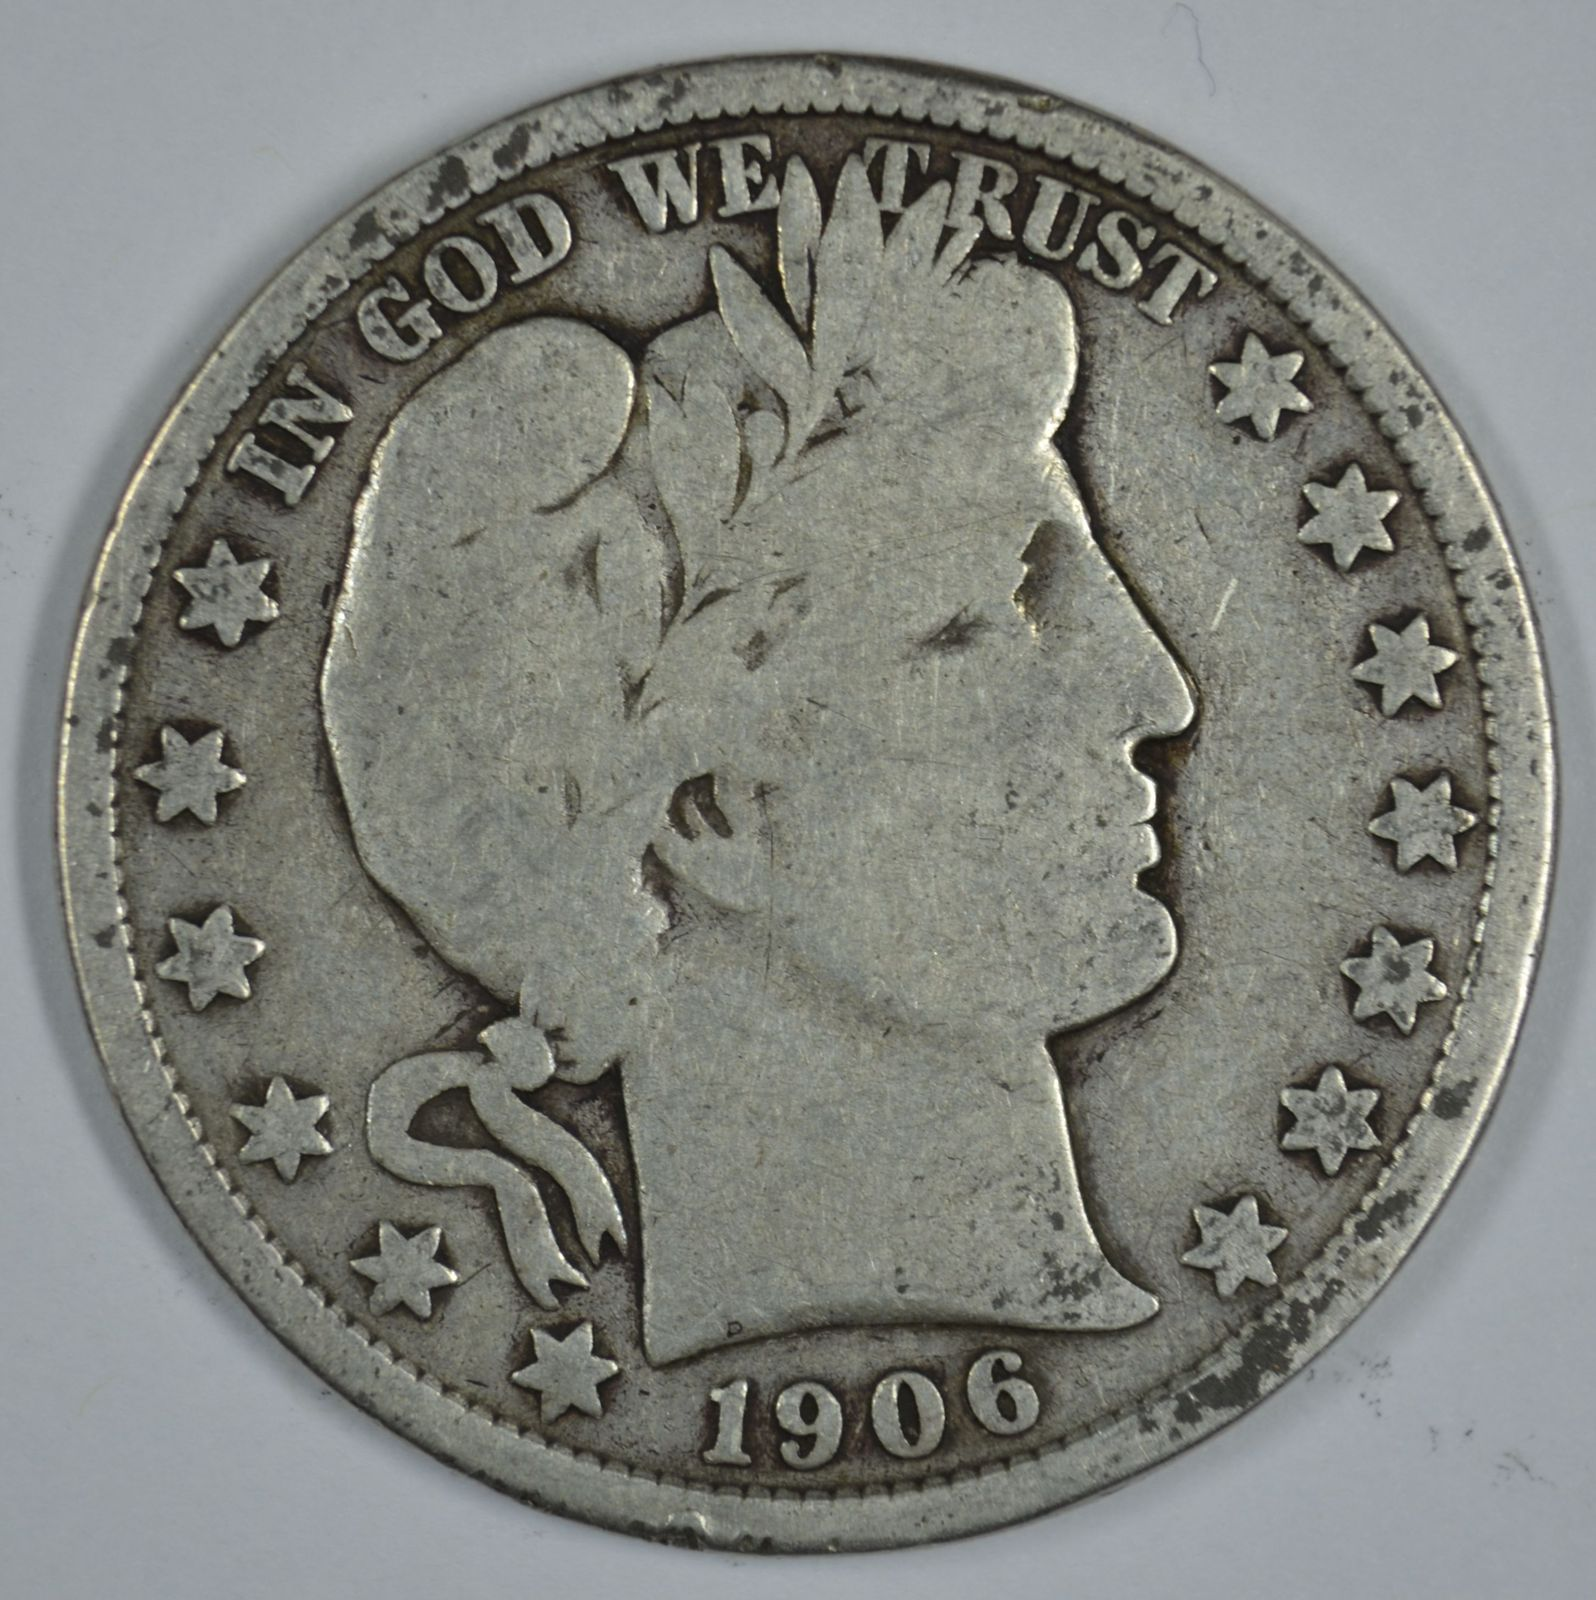 Primary image for 1906 D Barber circulated silver half